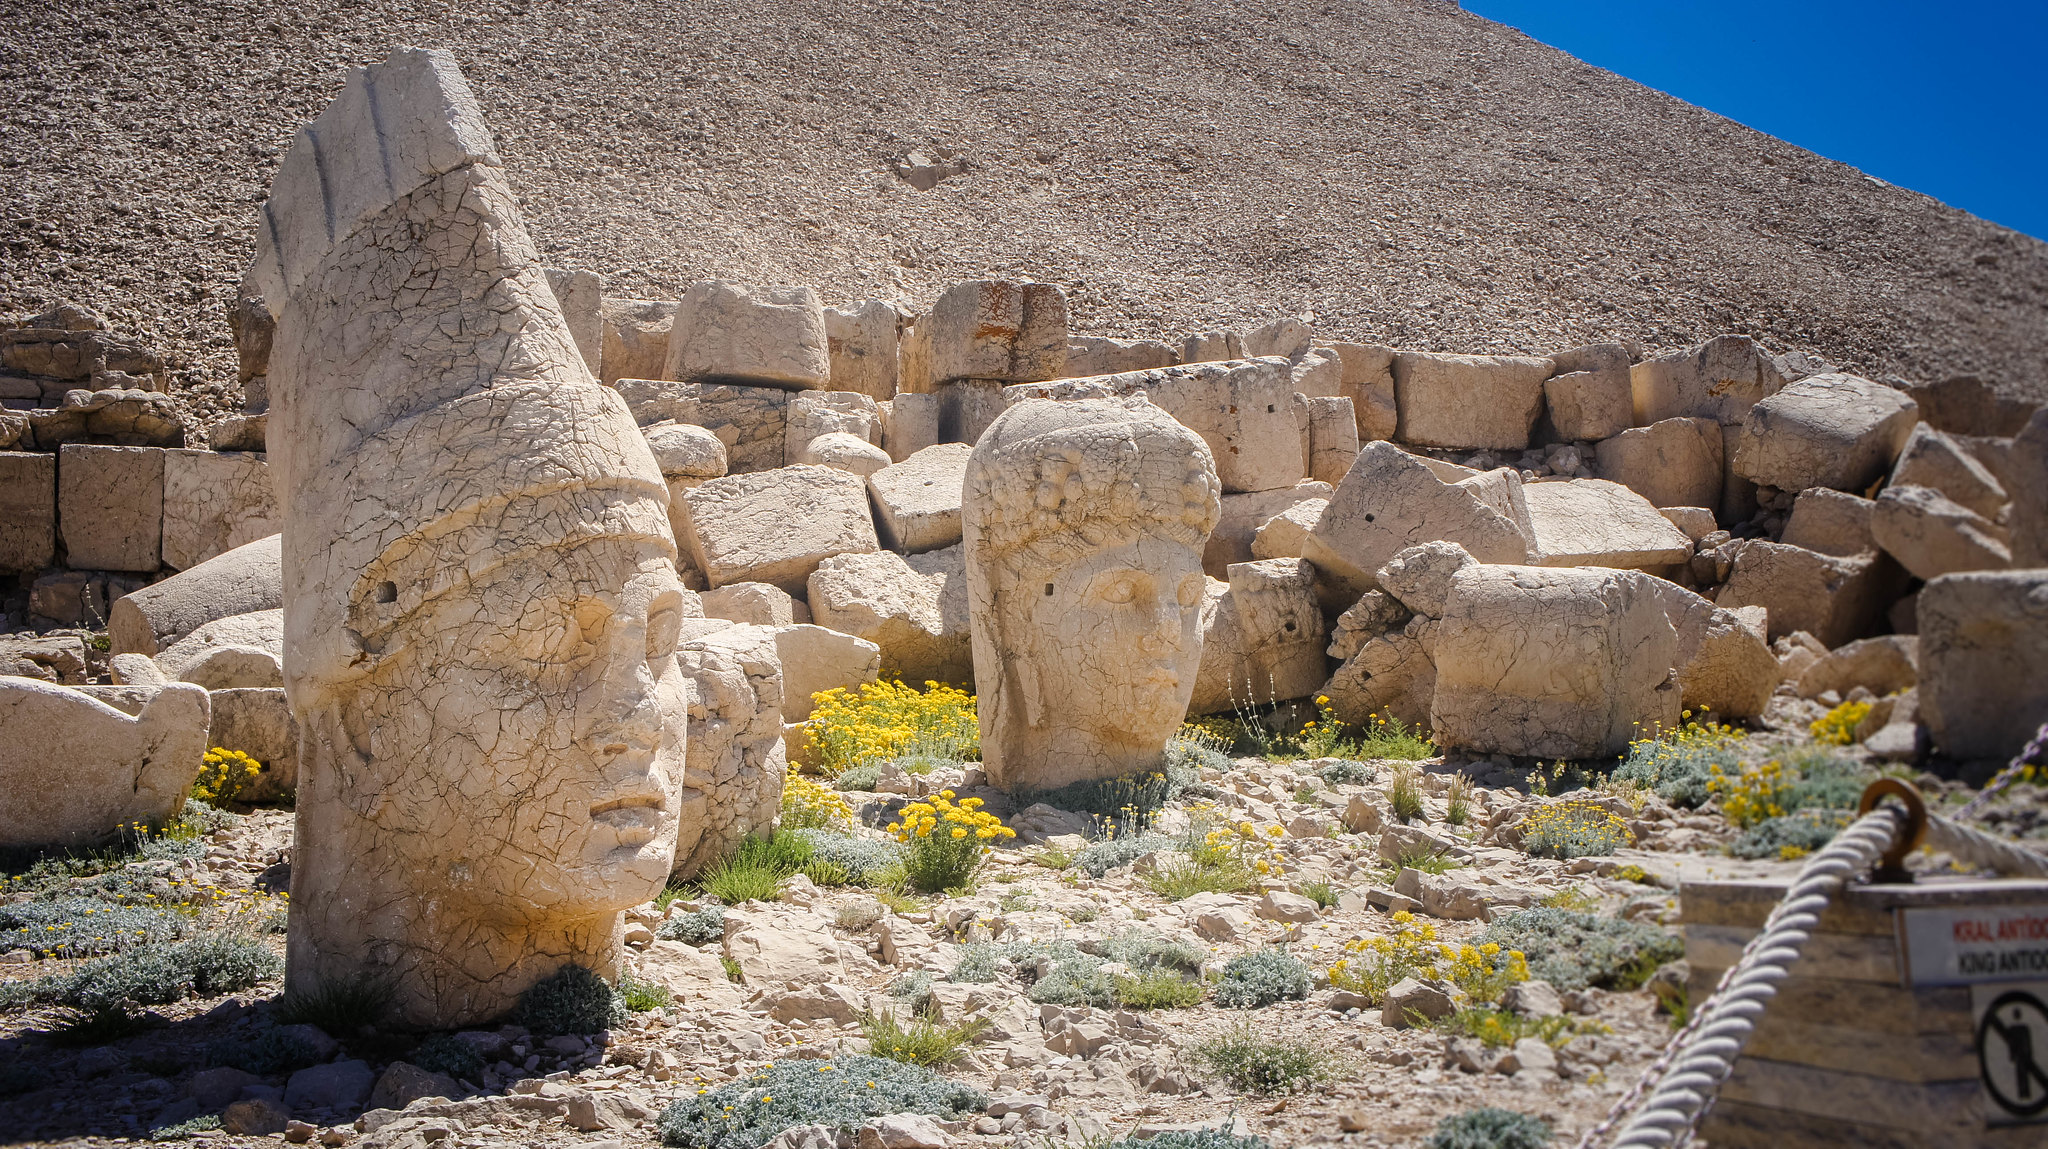 Scattered heads at Nemrut Dağ